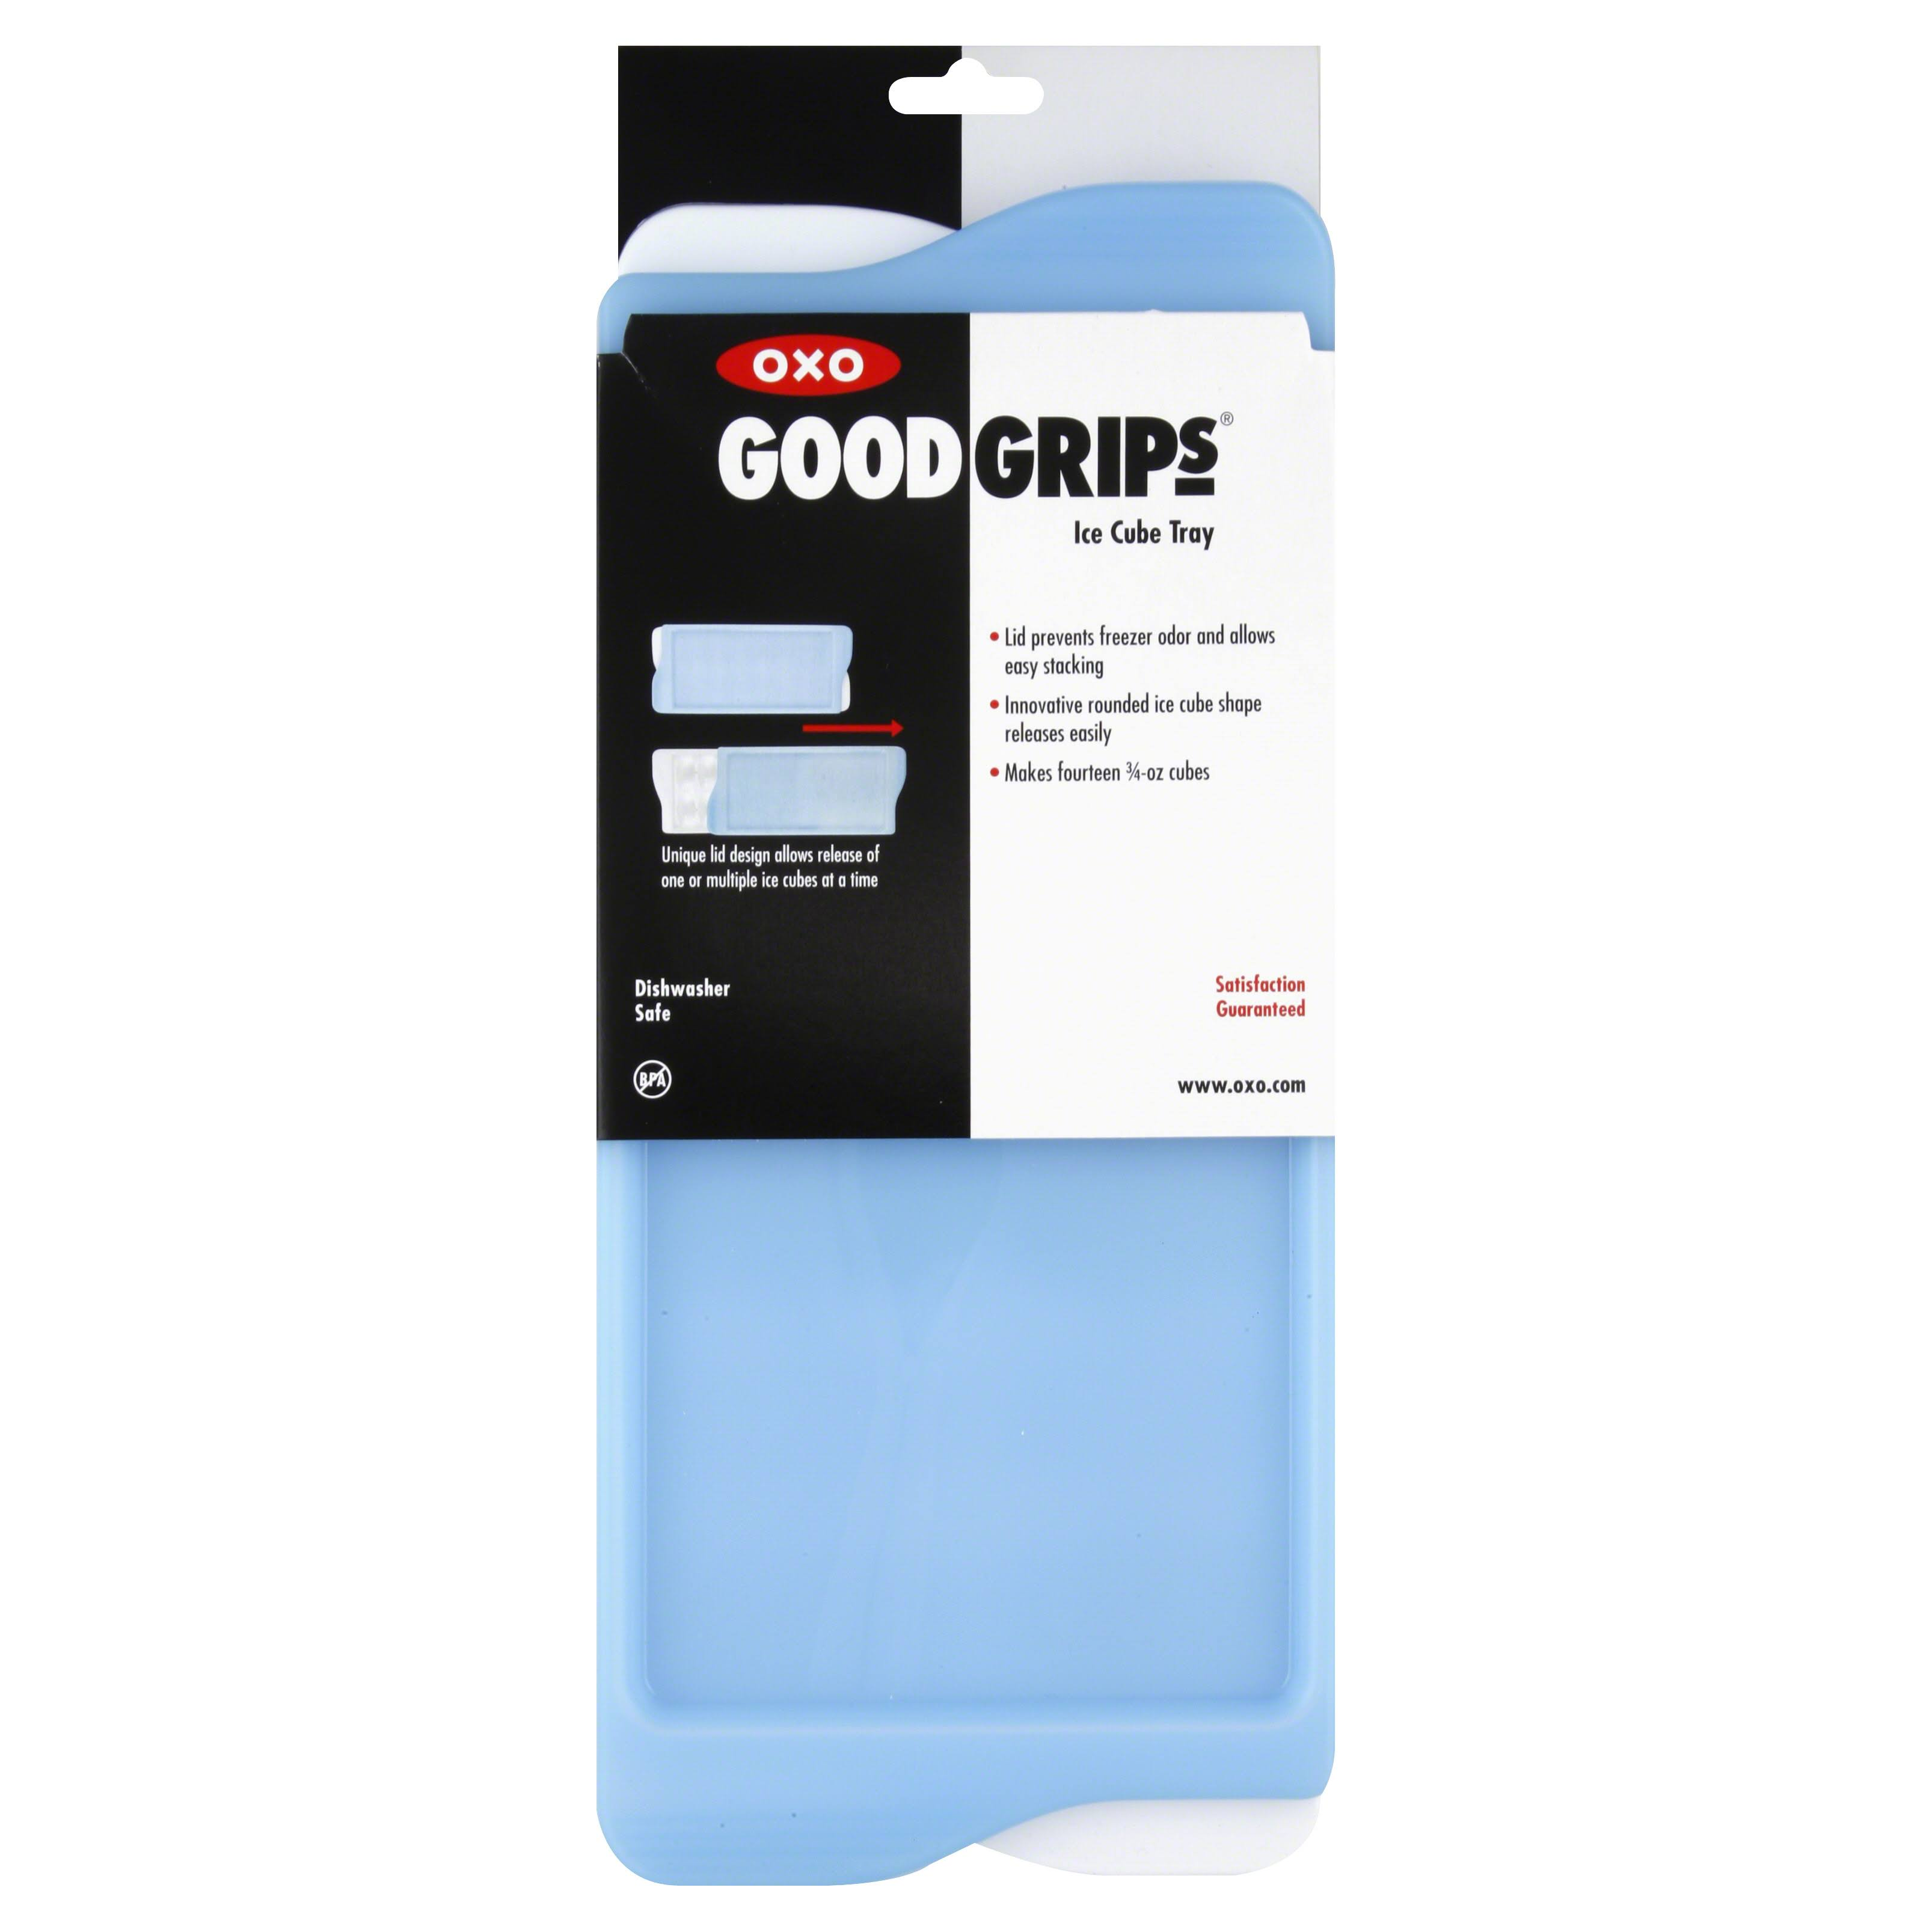 Oxo Good Grips Ice Cube Tray